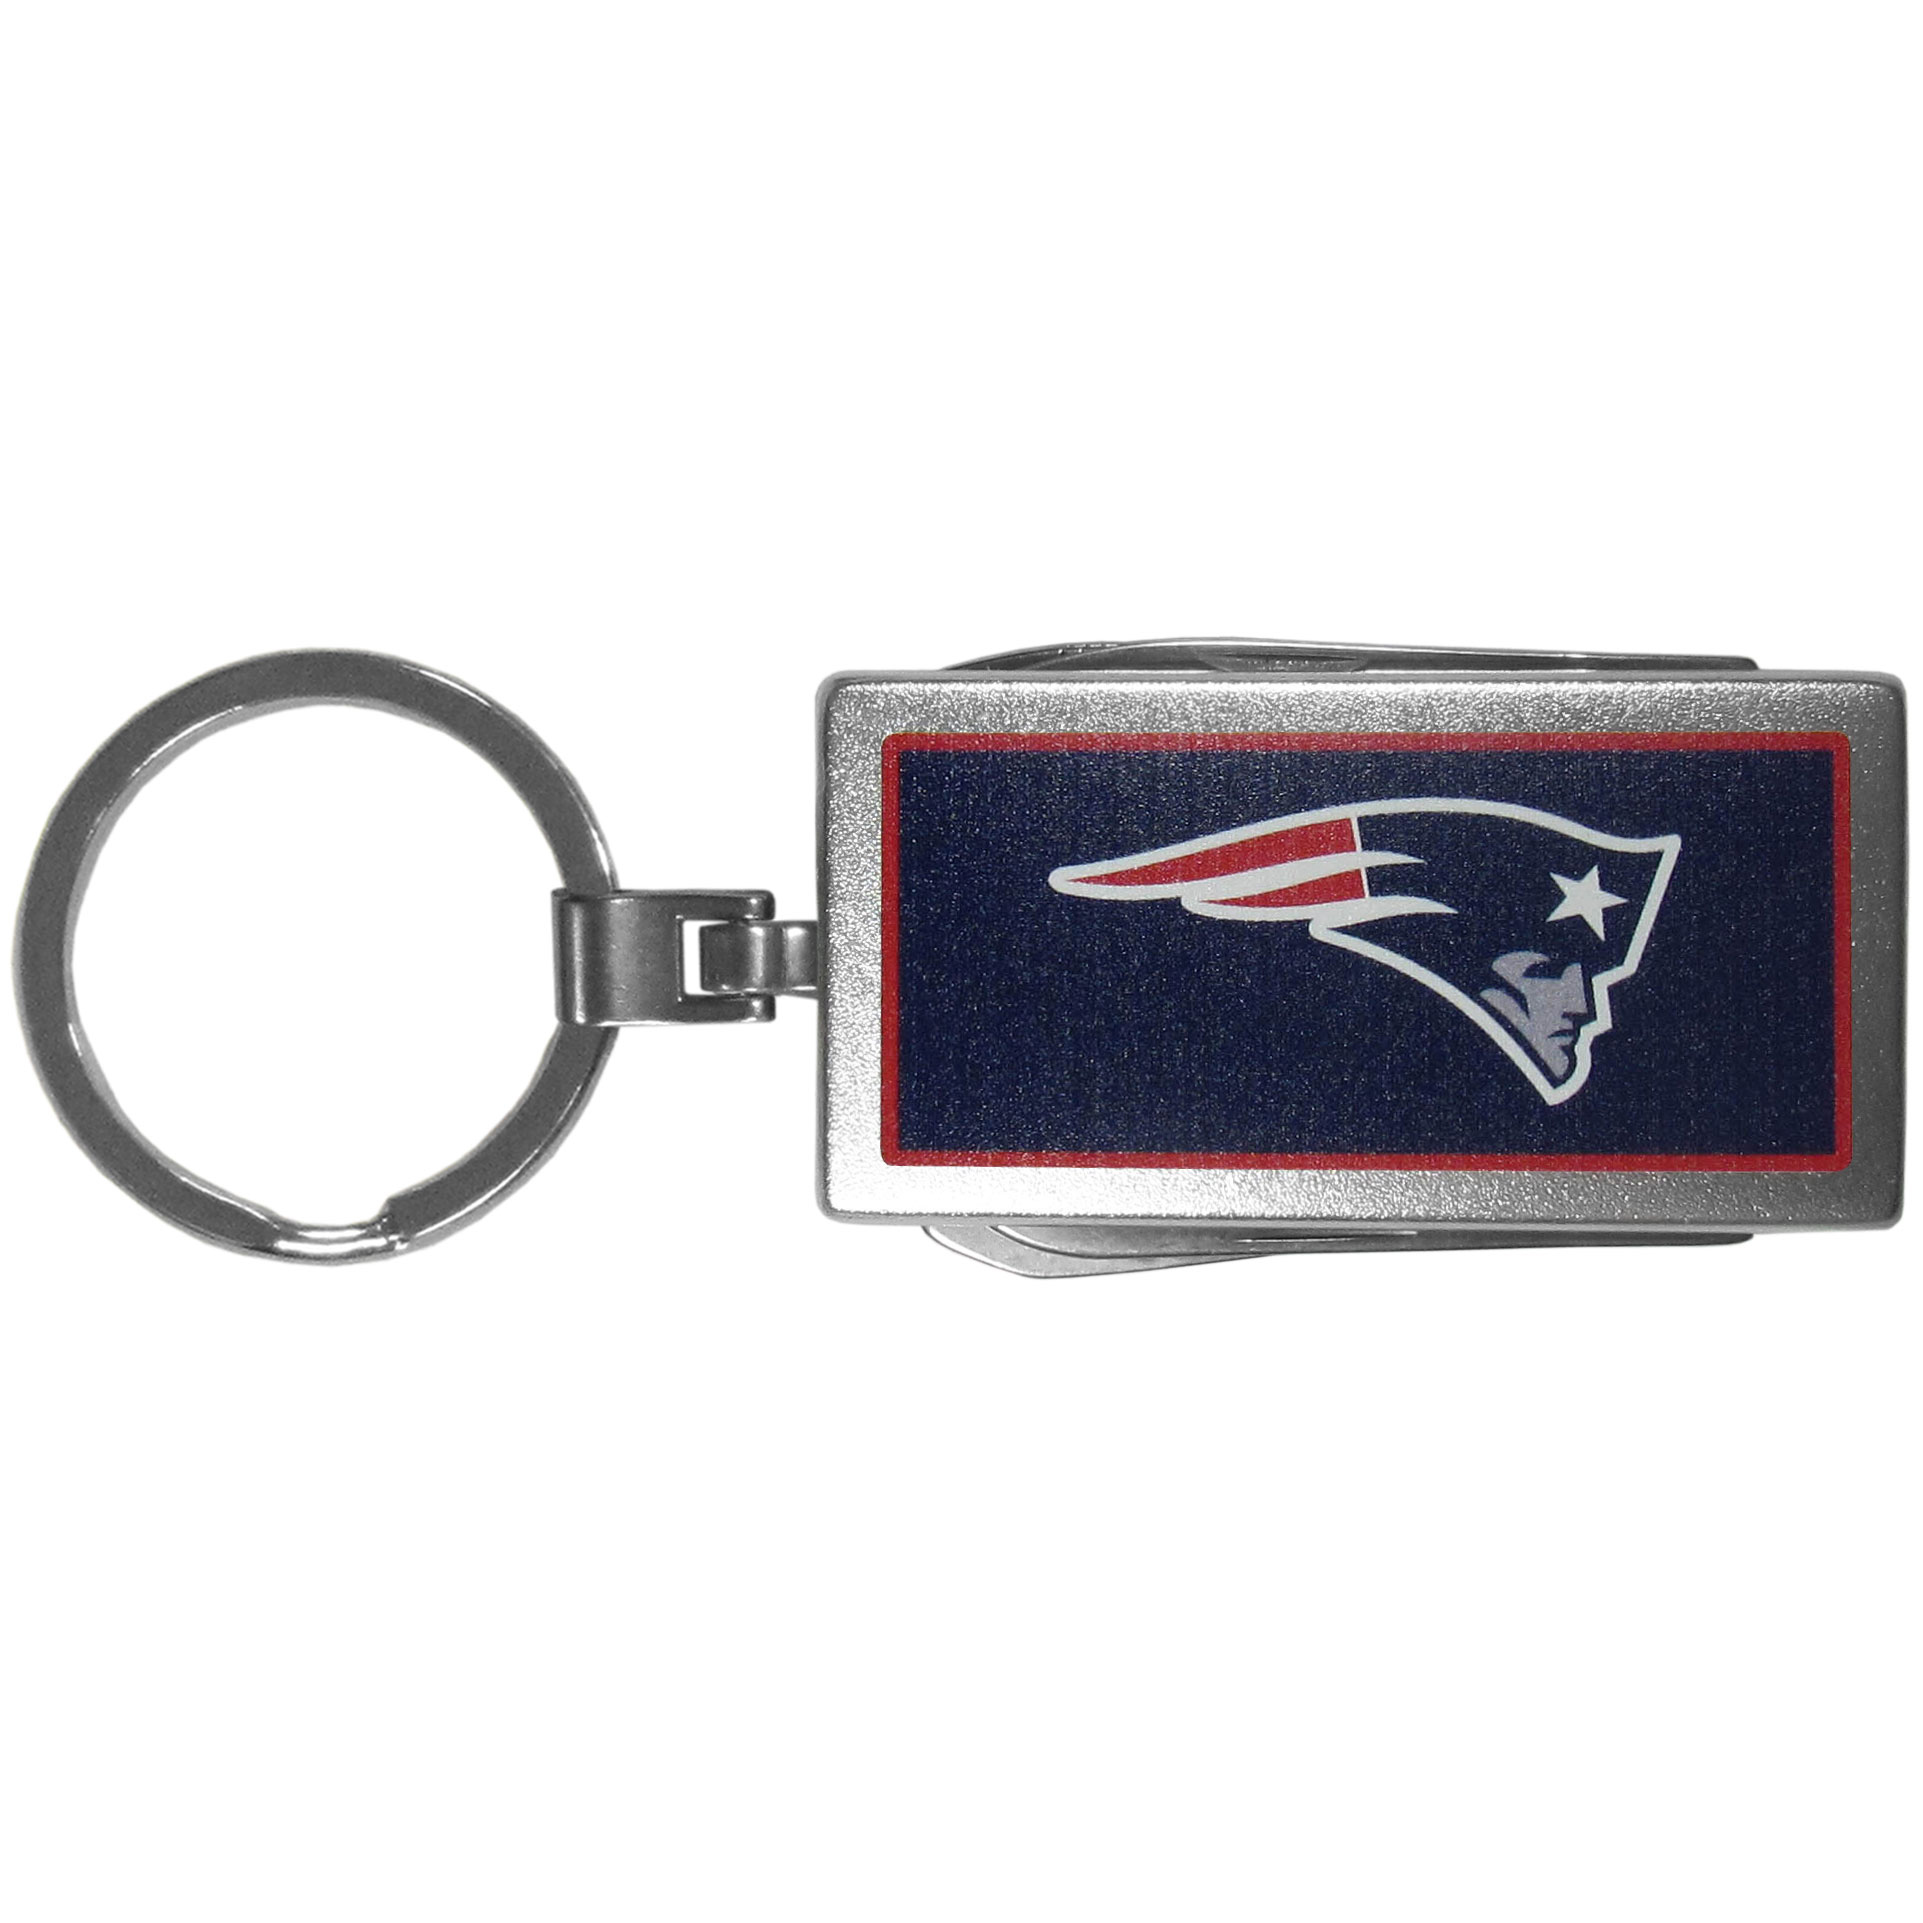 New England Patriots Multi-tool Key Chain, Logo - Be the hero at the tailgate, camping, or on a Friday night with your New England Patriots Multi-Tool Keychain which comes complete with bottle opener, scissors, knife, nail file and screw driver. Be it opening a package or a beverage Siskiyou's Multi-Tool Keychain goes wherever your keys do. The keychain hangs at 4 inches long when closed.